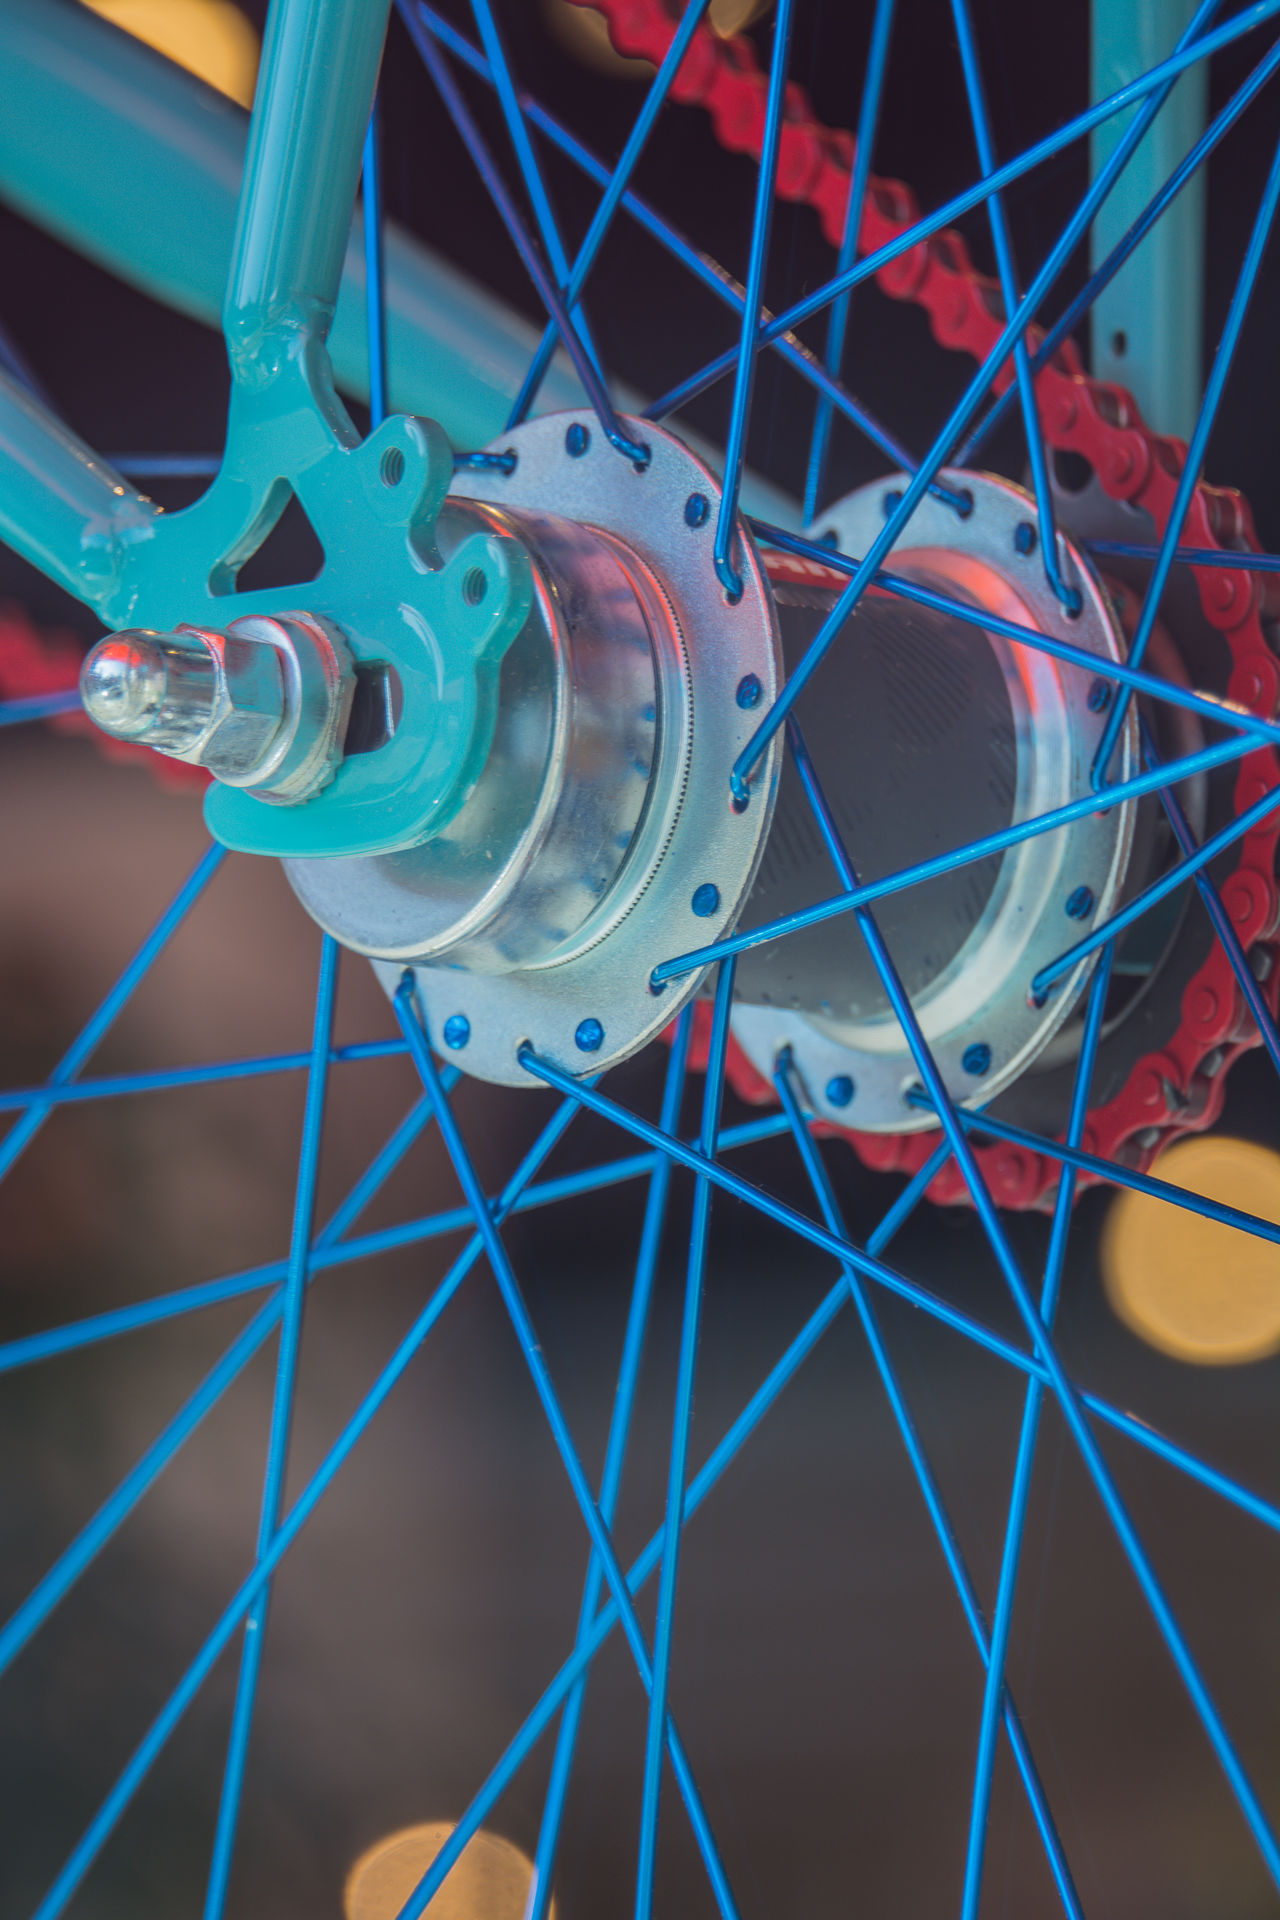 Bicycle Bicycle Spokes Close-up Complexity Creativity Day Engineering Indoors  Industry Laboratory No People Science Technology